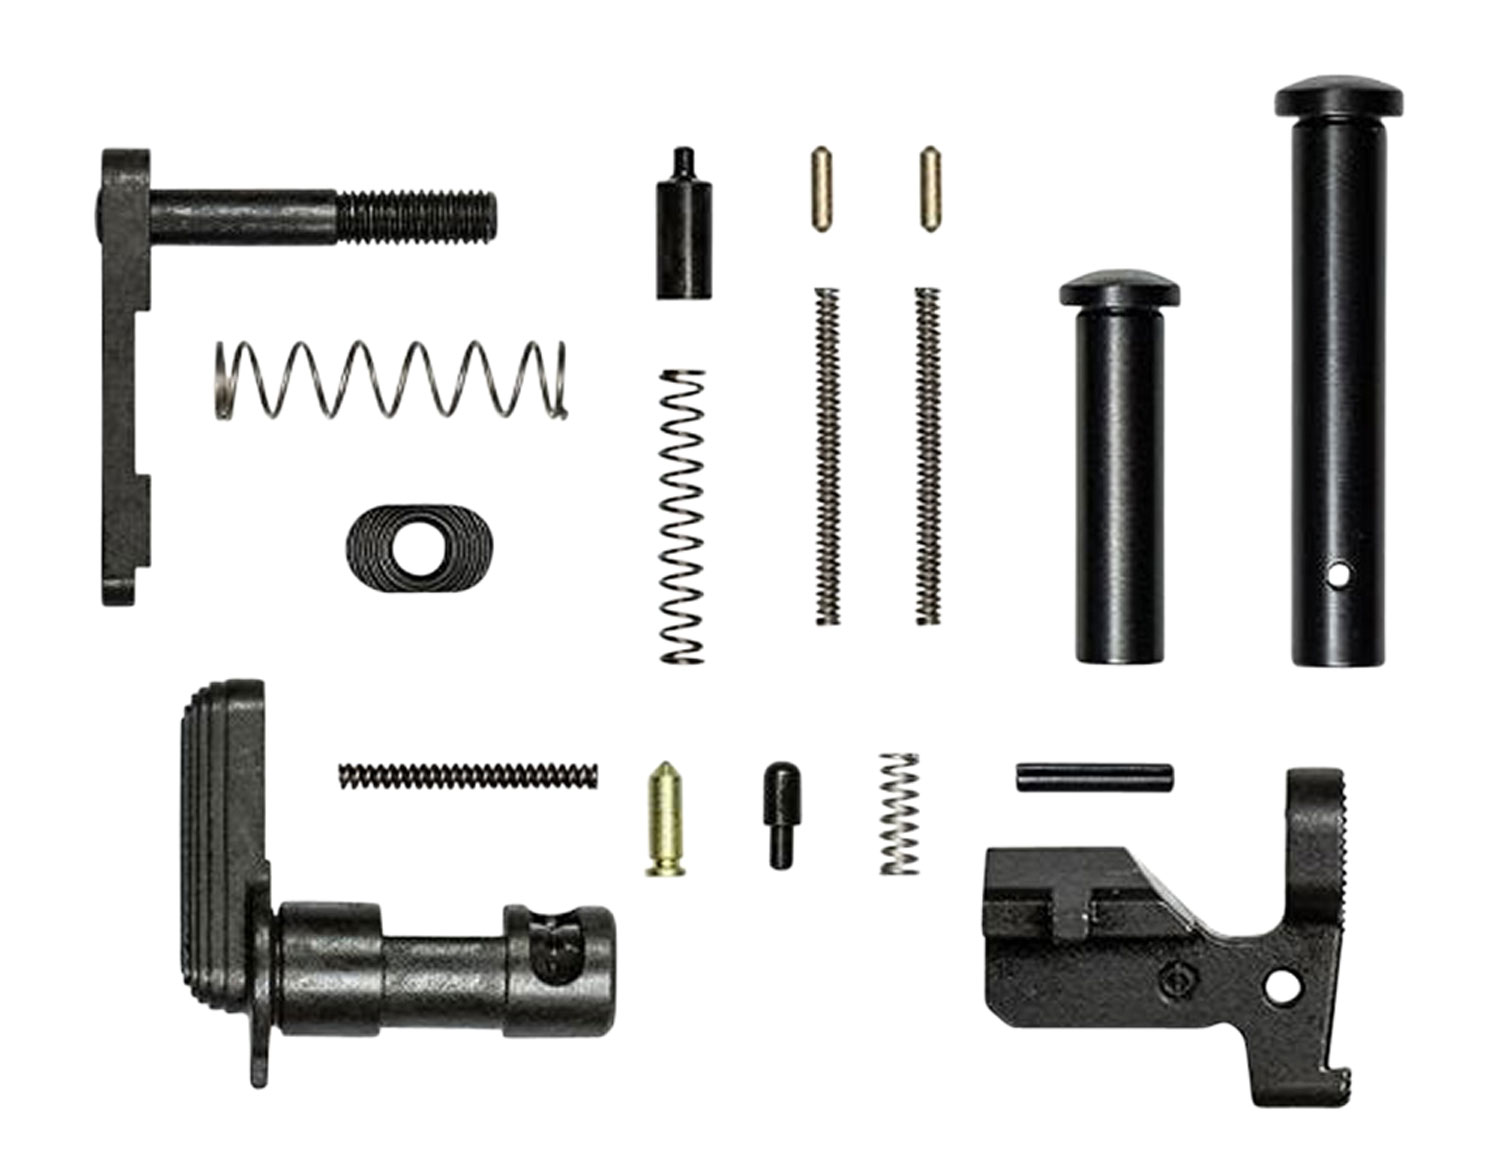 Aero Precision APRH100386C Lower Parts Kit  M5 Platform 308 Win Does Not Include the Fire Control Group or Pistol Grip